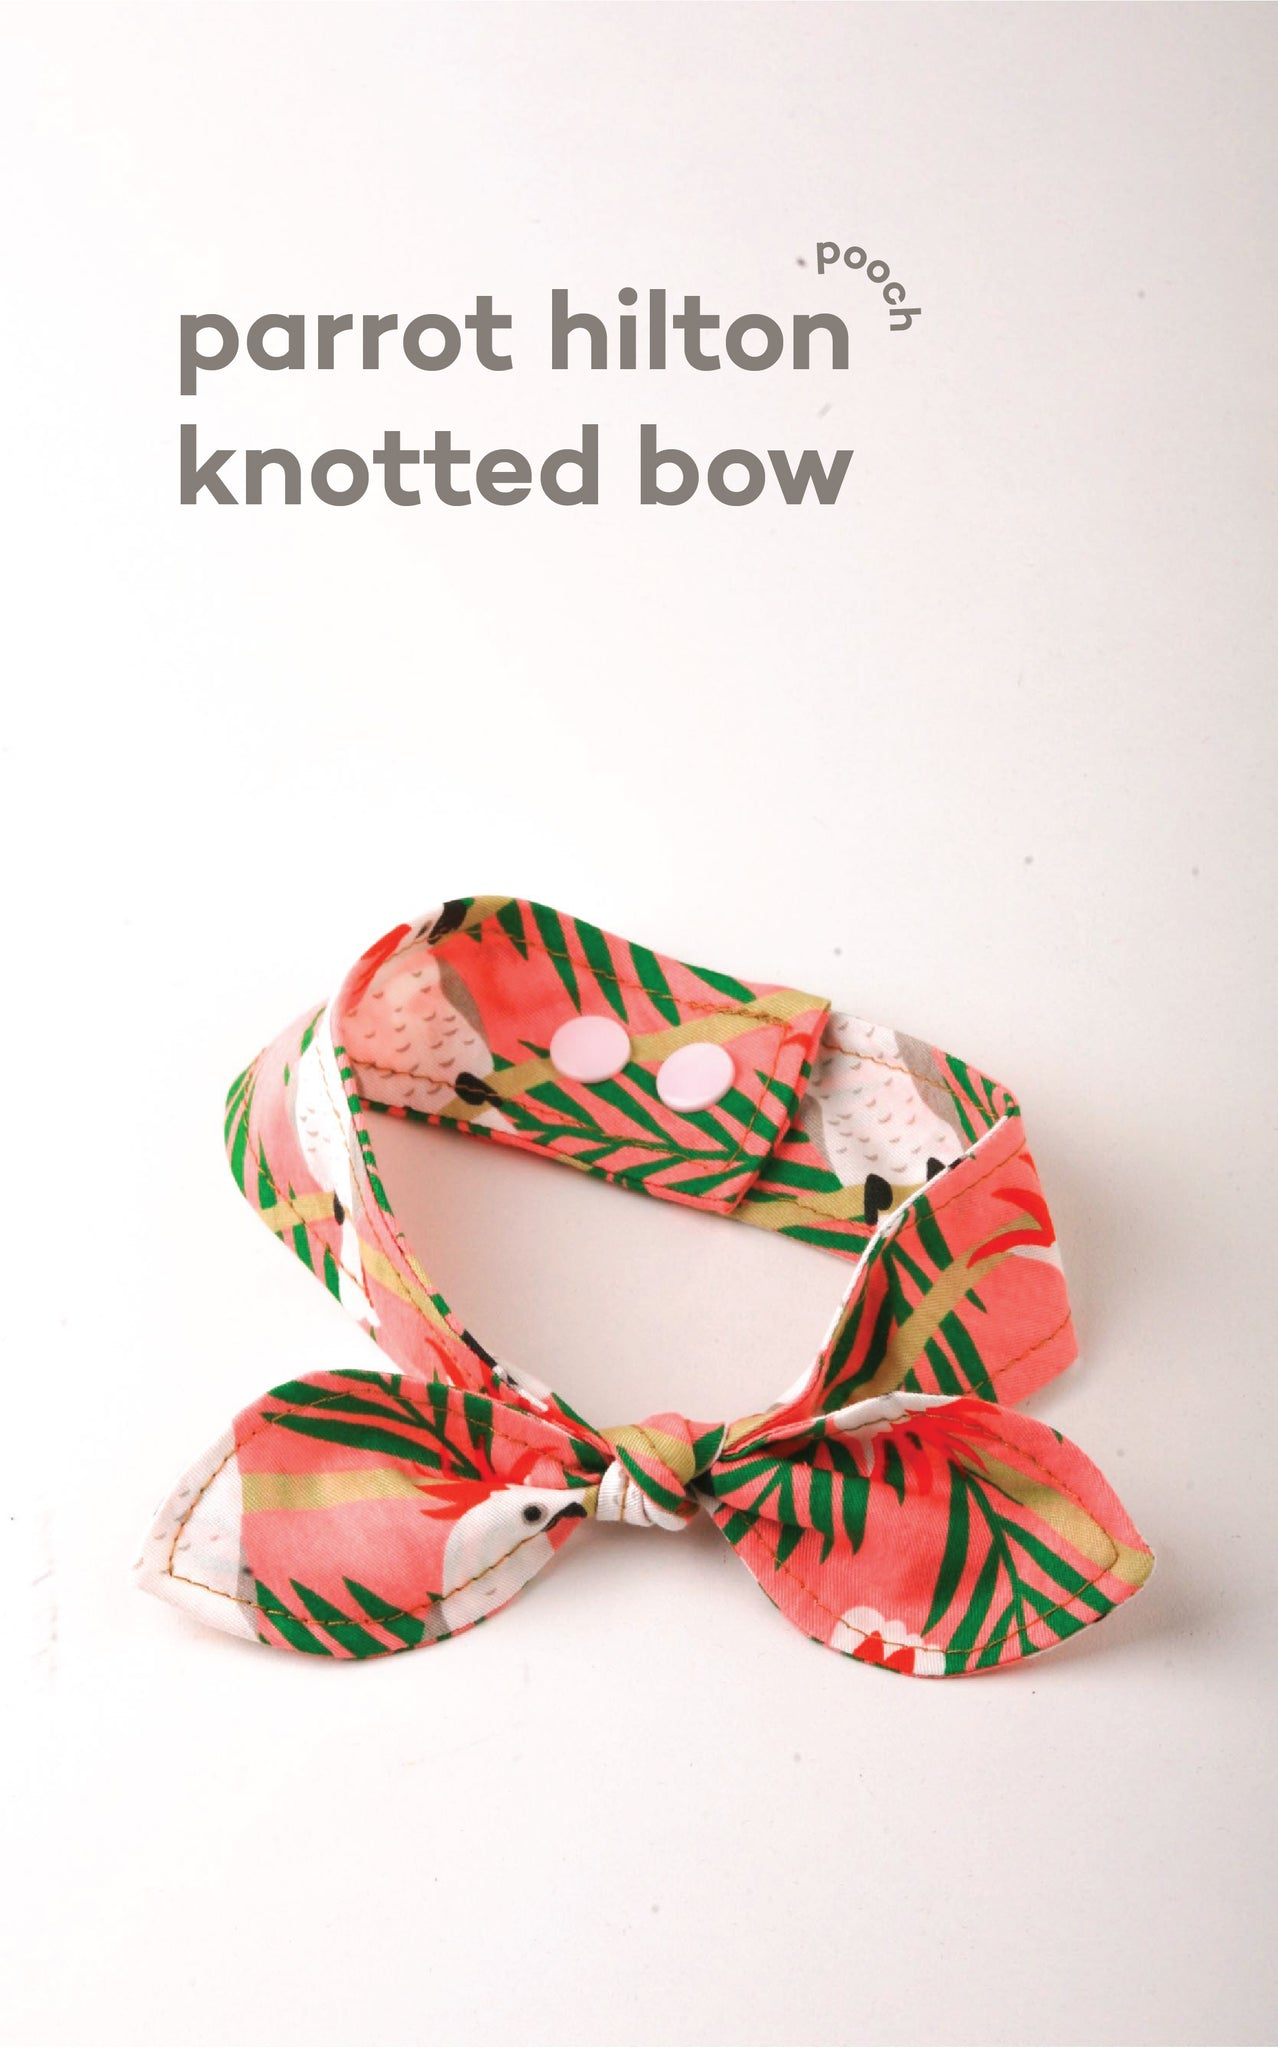 Parrot Hilton Knotted Bow